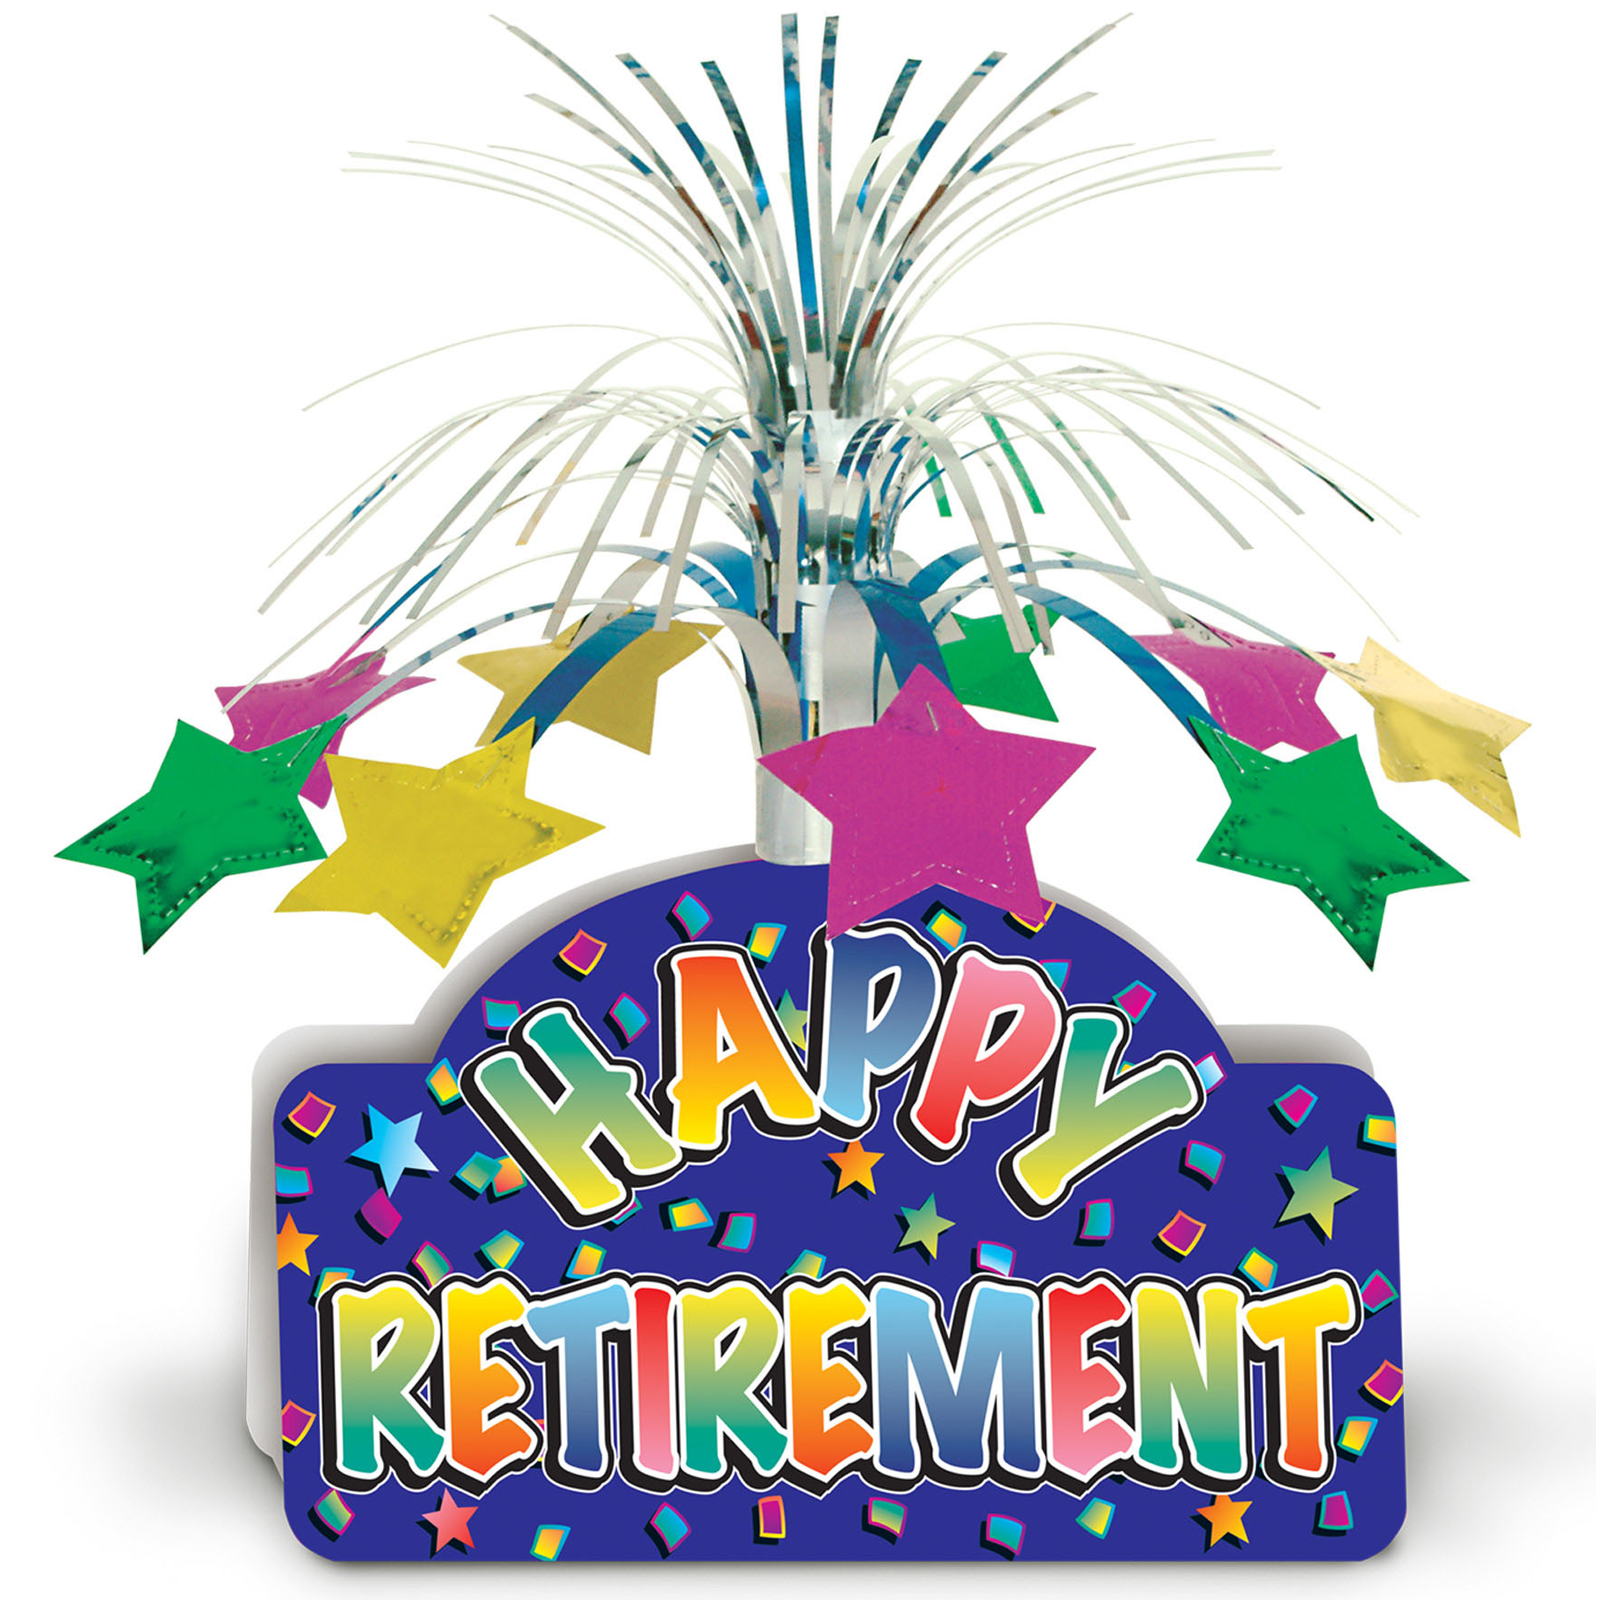 Clipart for retirement party free picture black and white download Free Retirement Reception Cliparts, Download Free Clip Art, Free ... picture black and white download